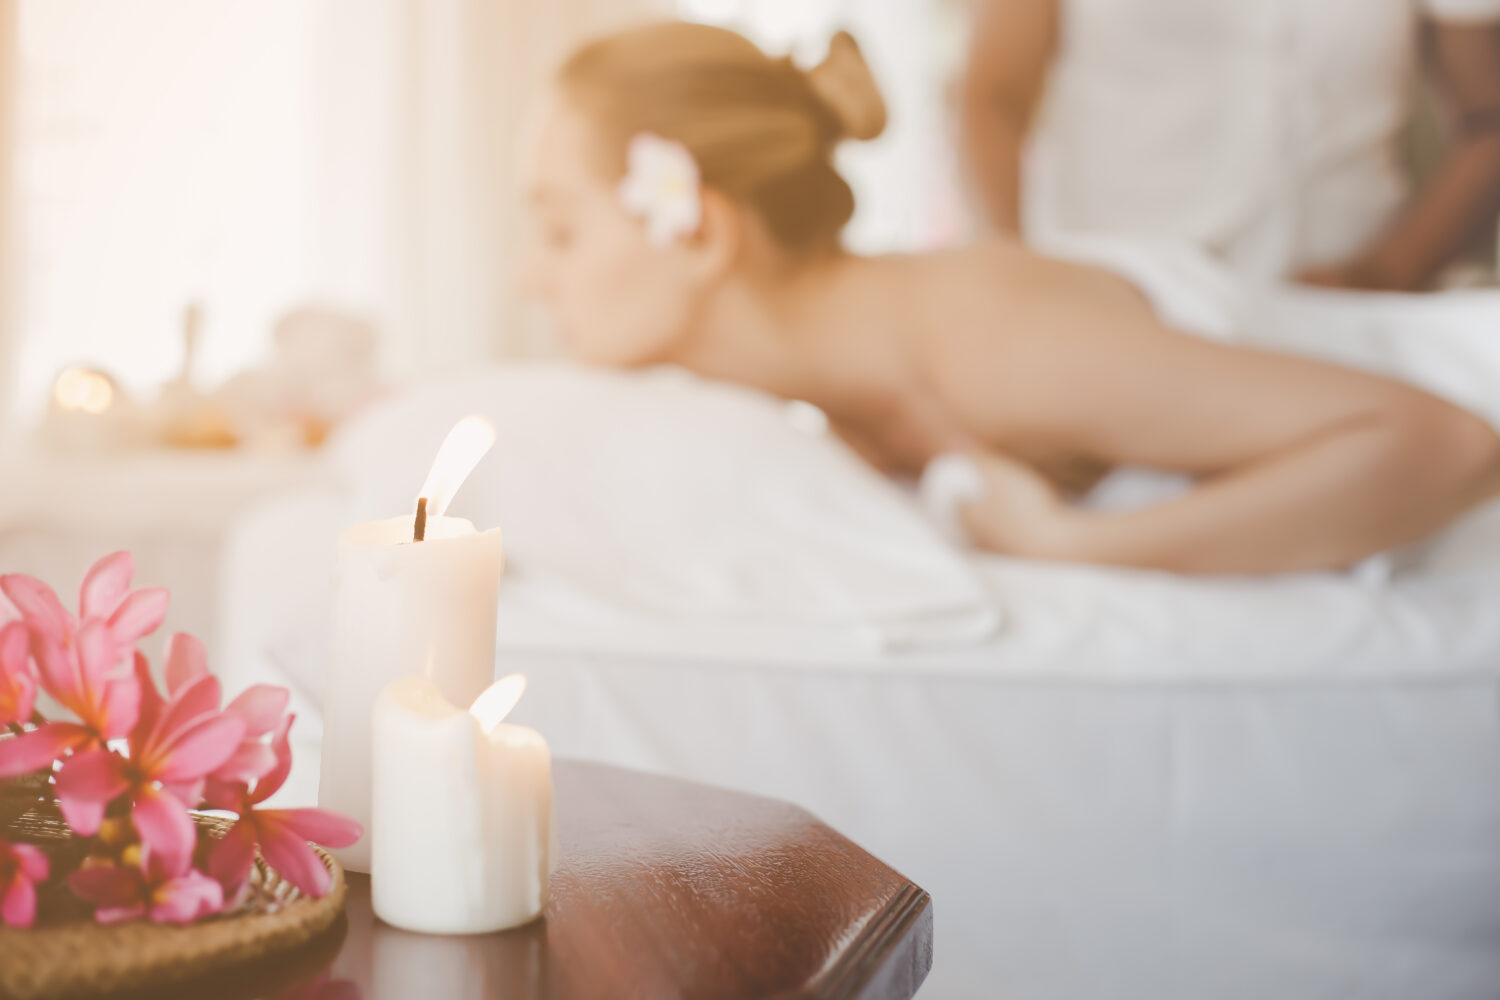 foreground candles on a table and a woman getting a massage in the background